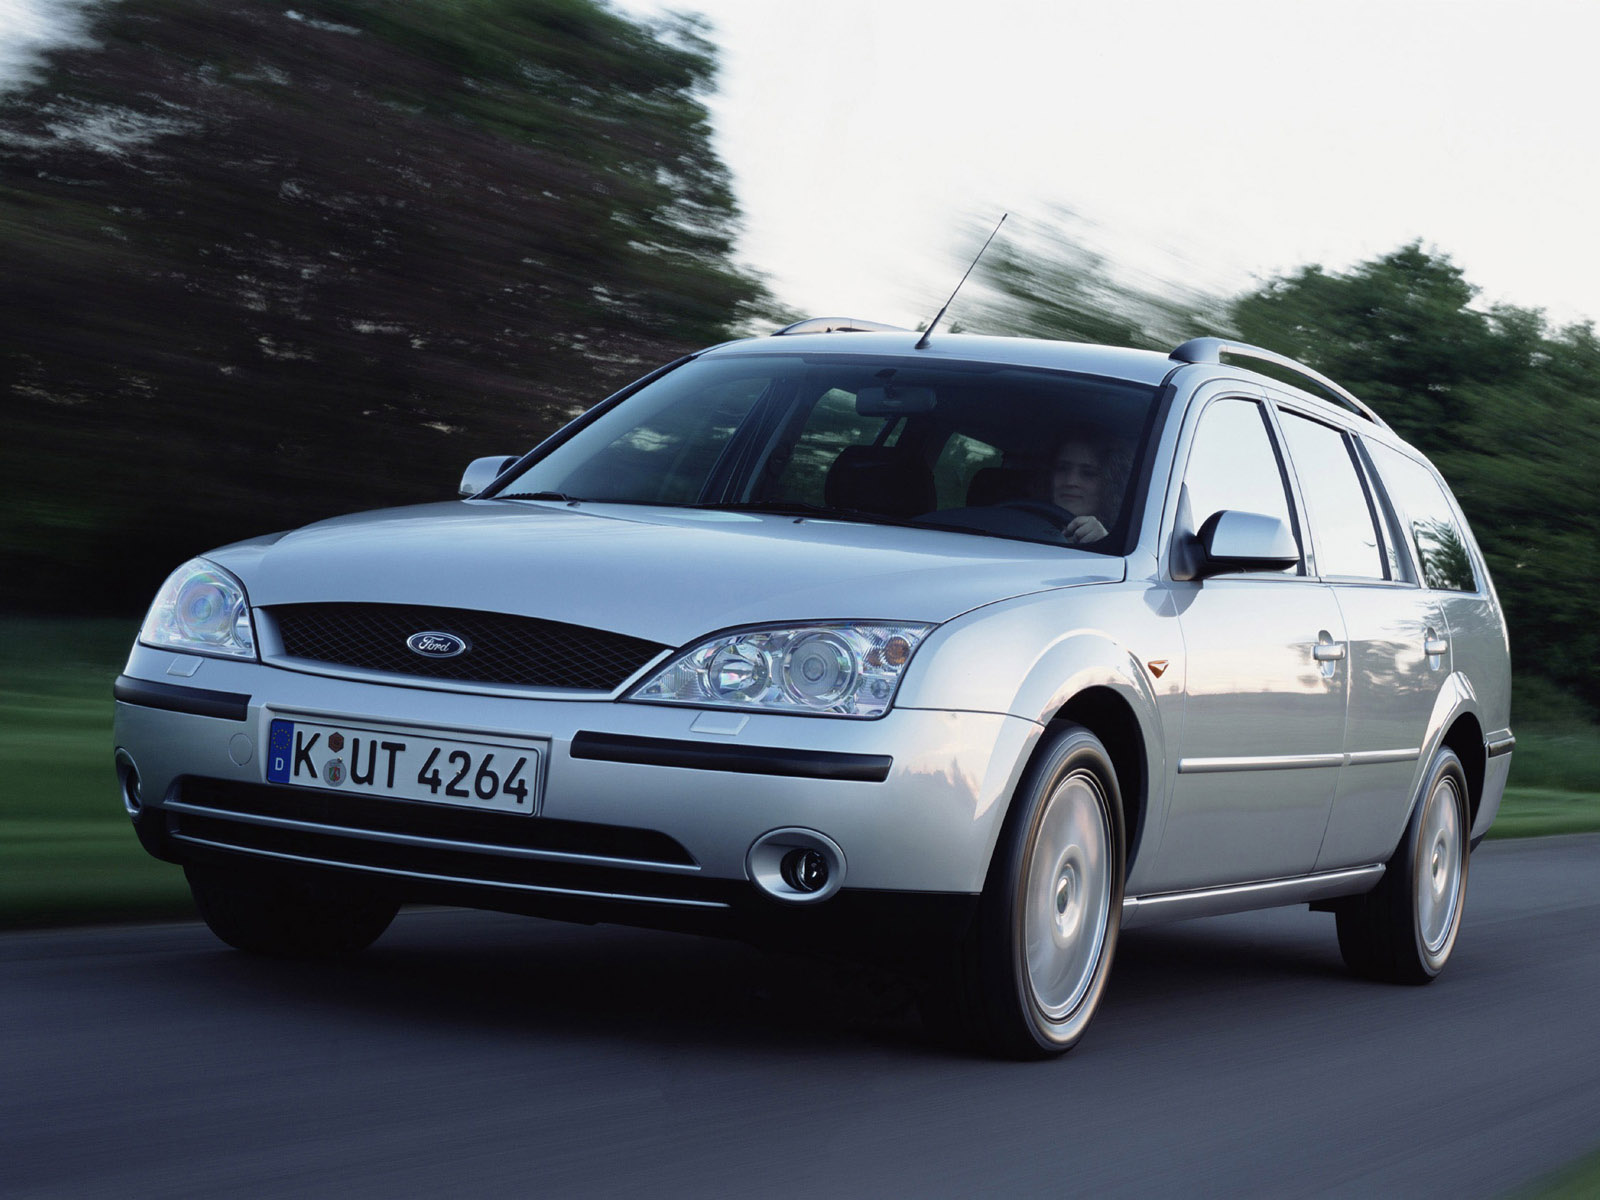 ford mondeo turnier 2000 2004 ford mondeo turnier 2000 2004 photo 07 car in pictures car. Black Bedroom Furniture Sets. Home Design Ideas